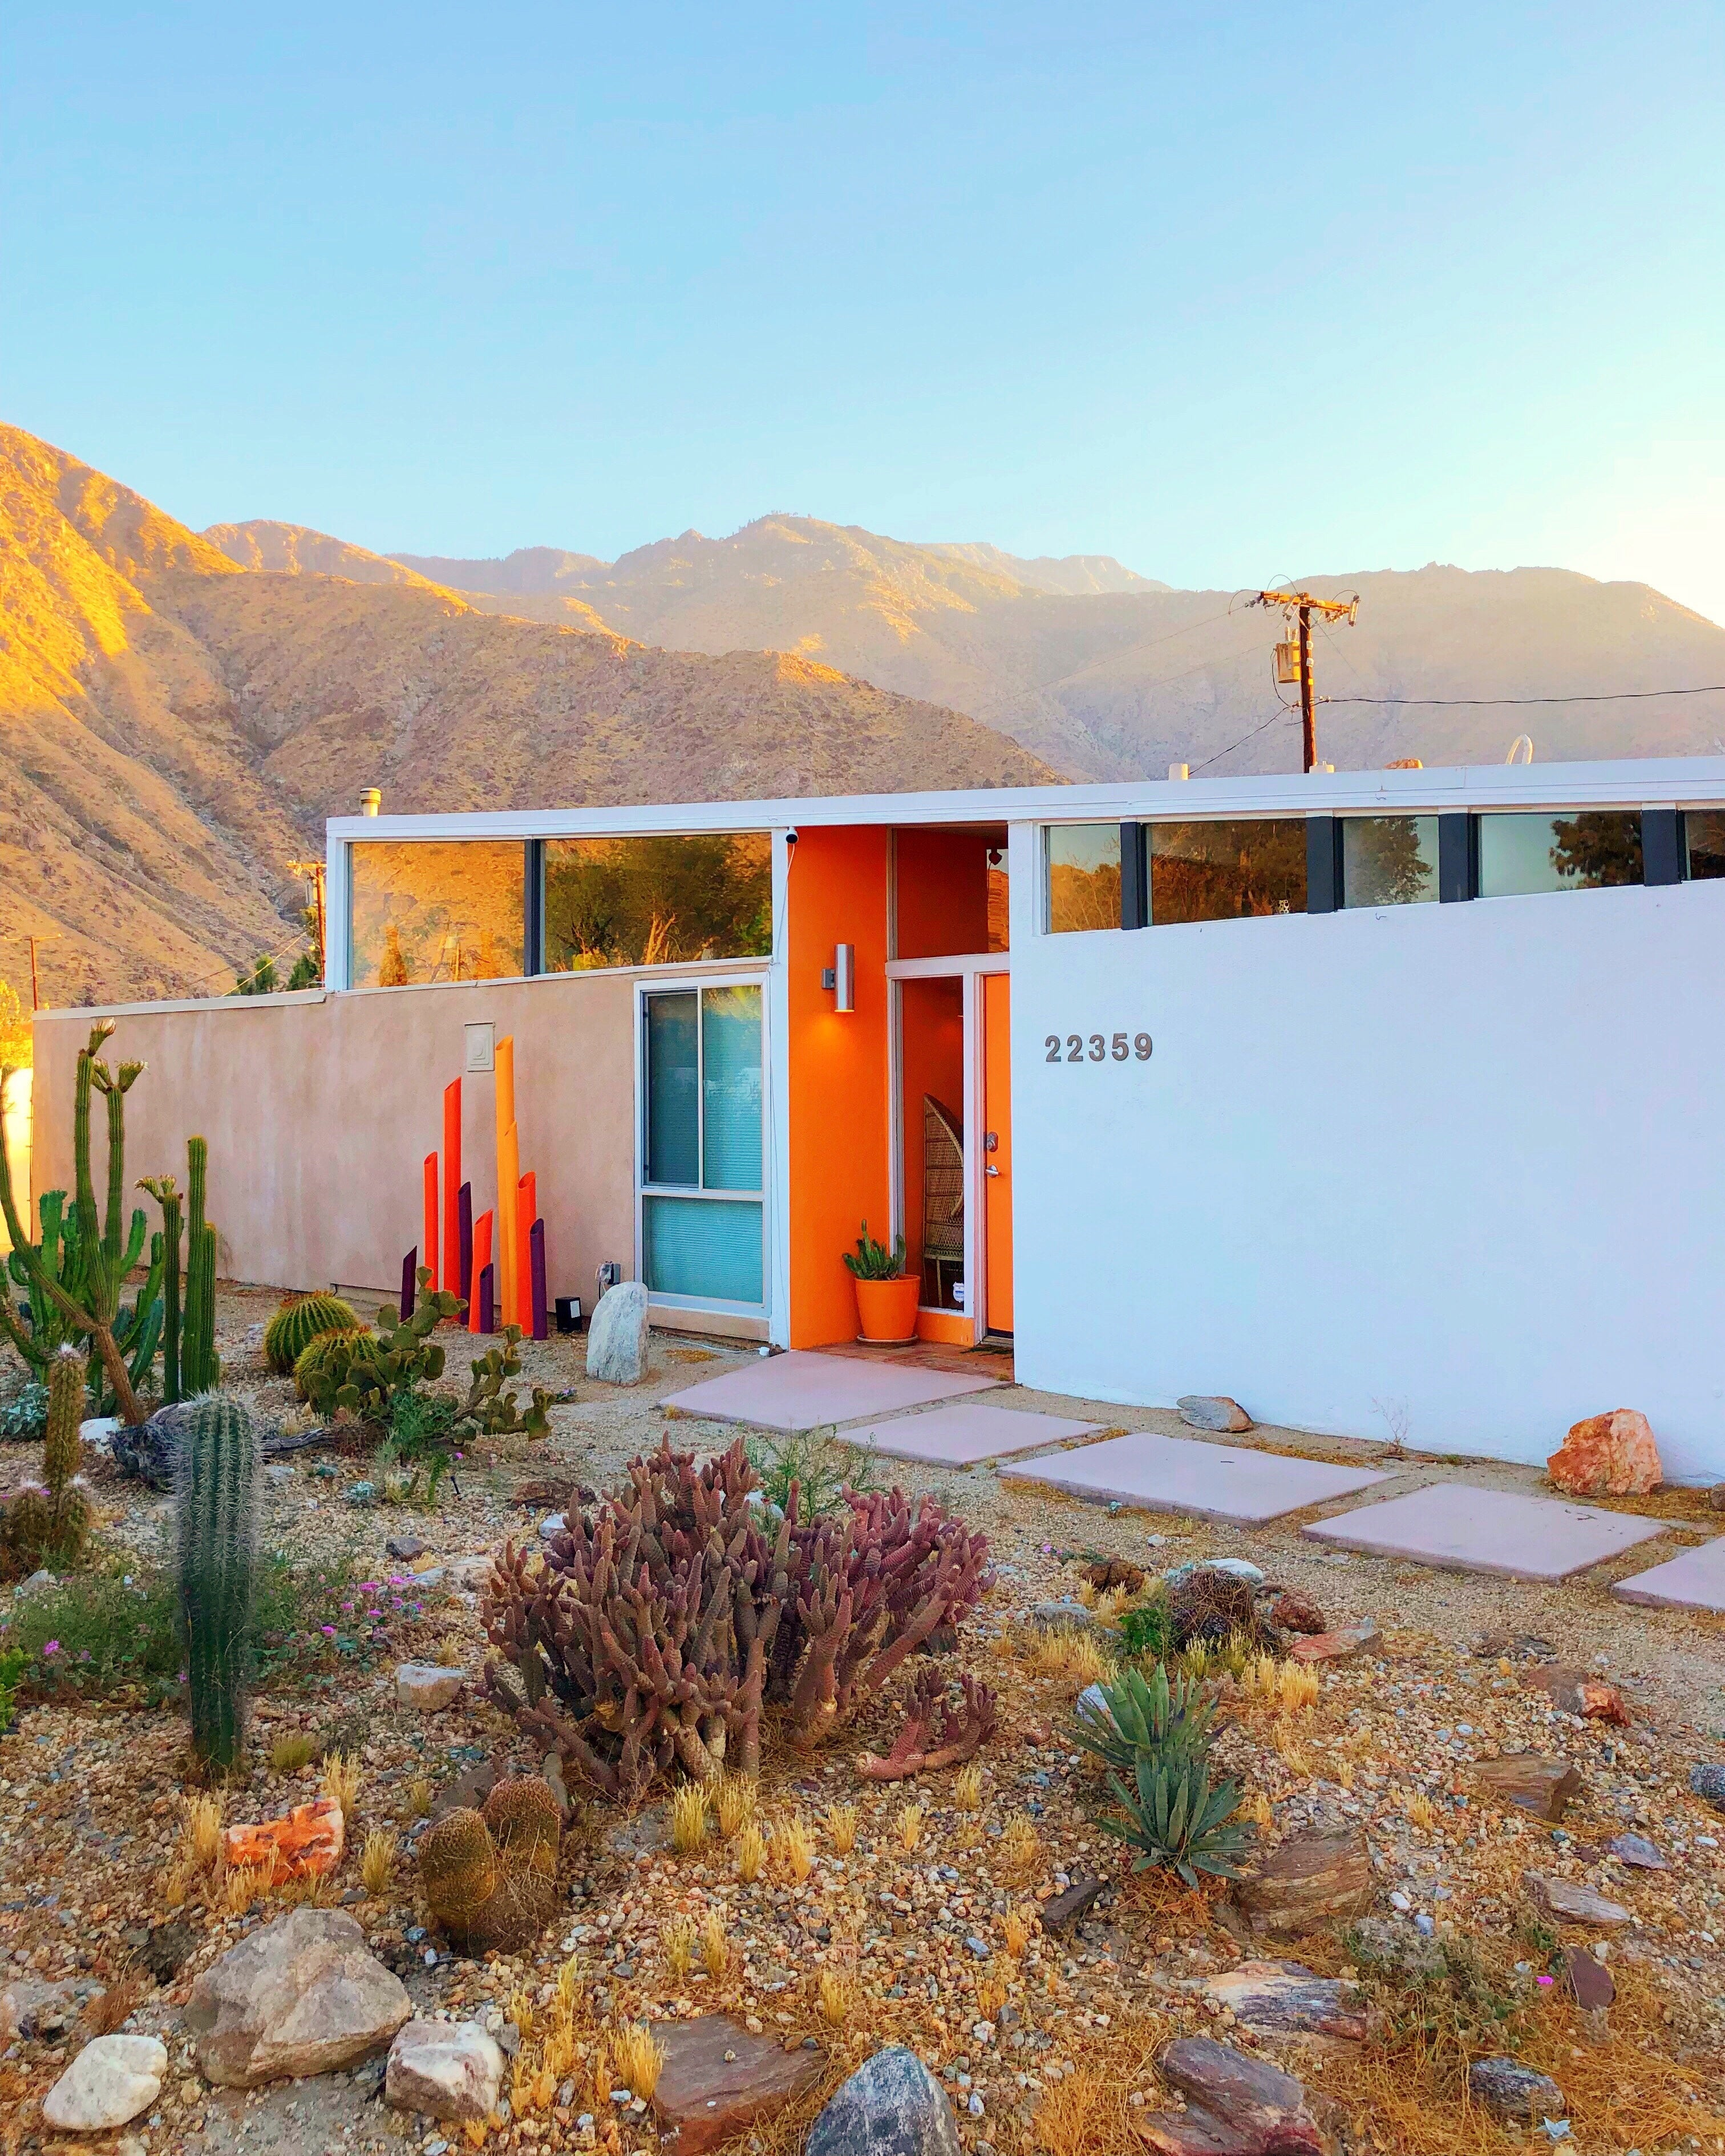 FEATURE_PalmSprings_01_photo_by_DanielleNagel